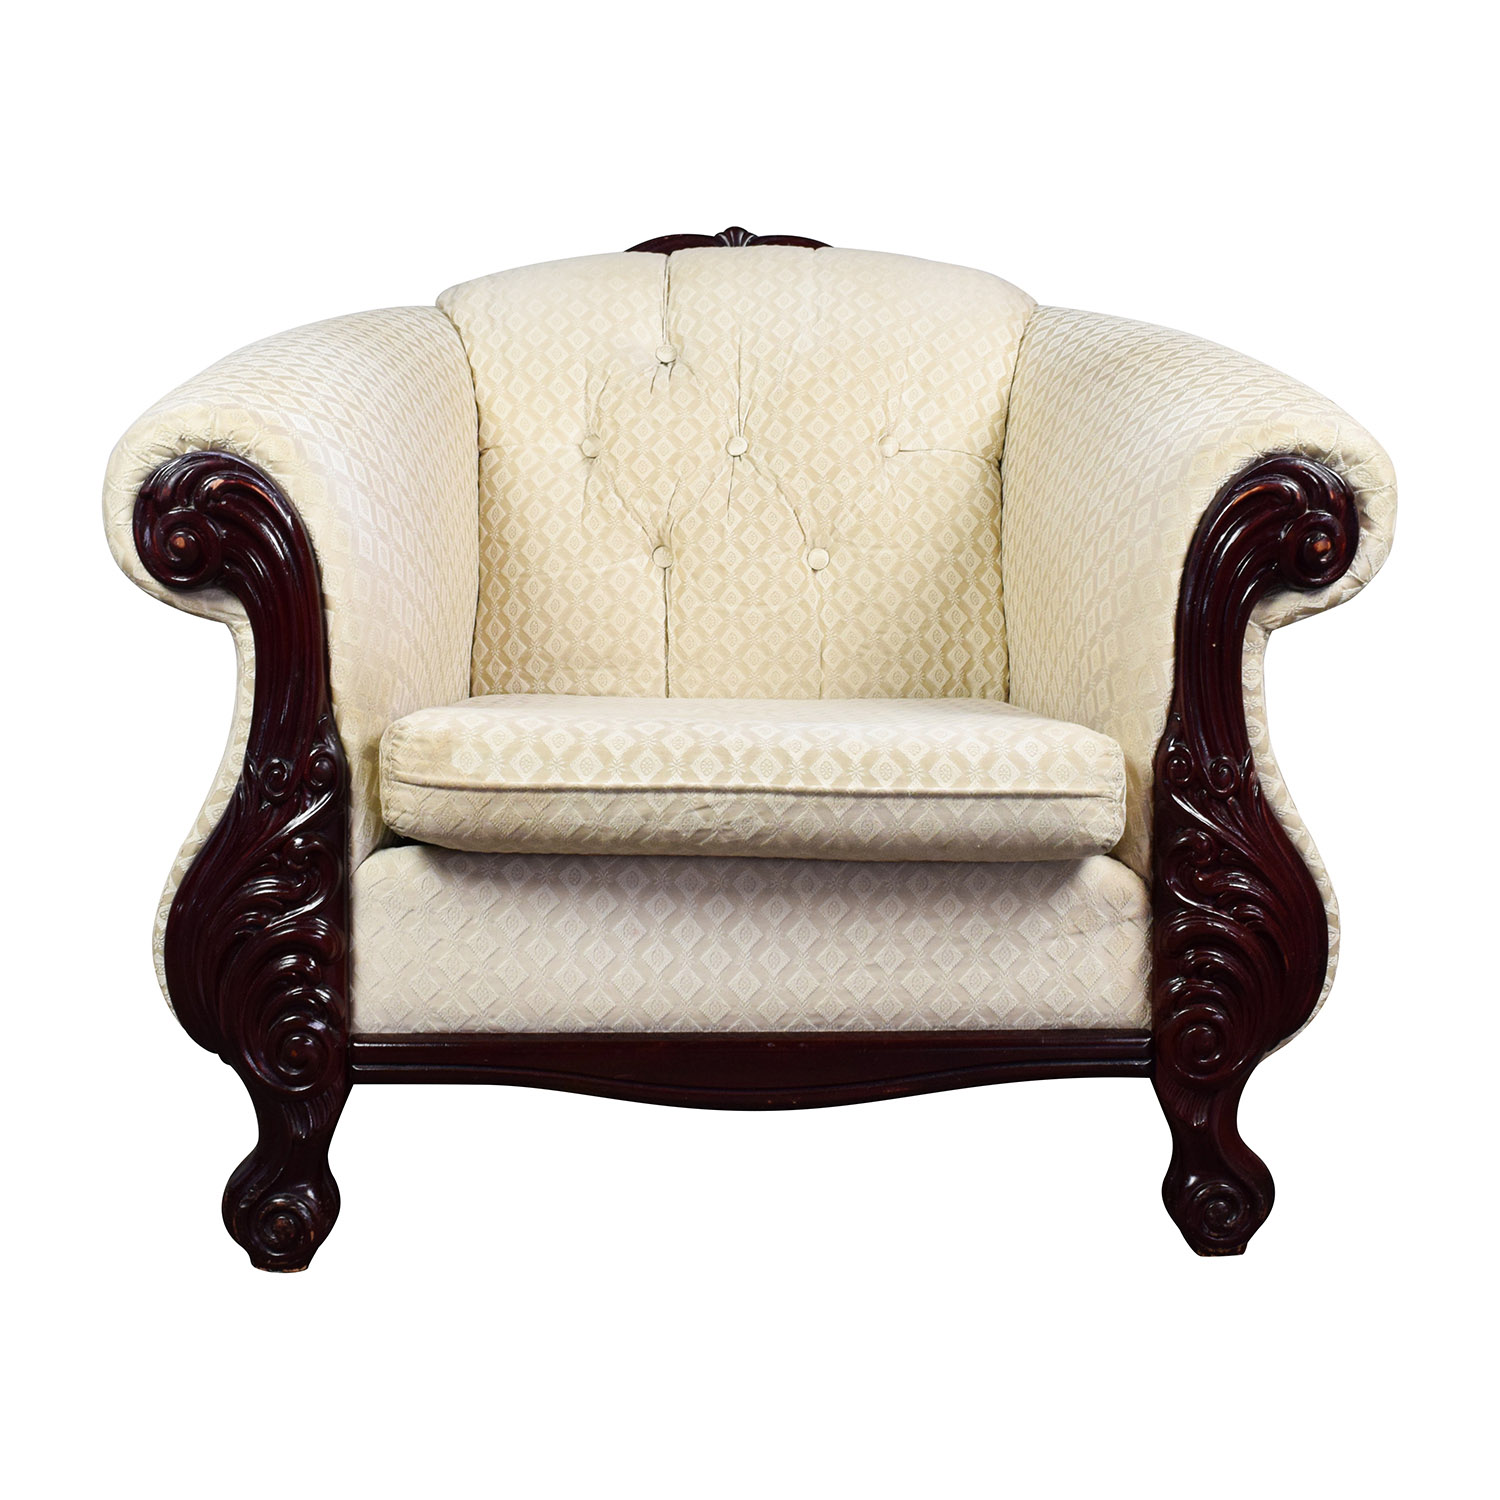 Buy Mahogany Wood Beige Upholstered ArmChair Online ...